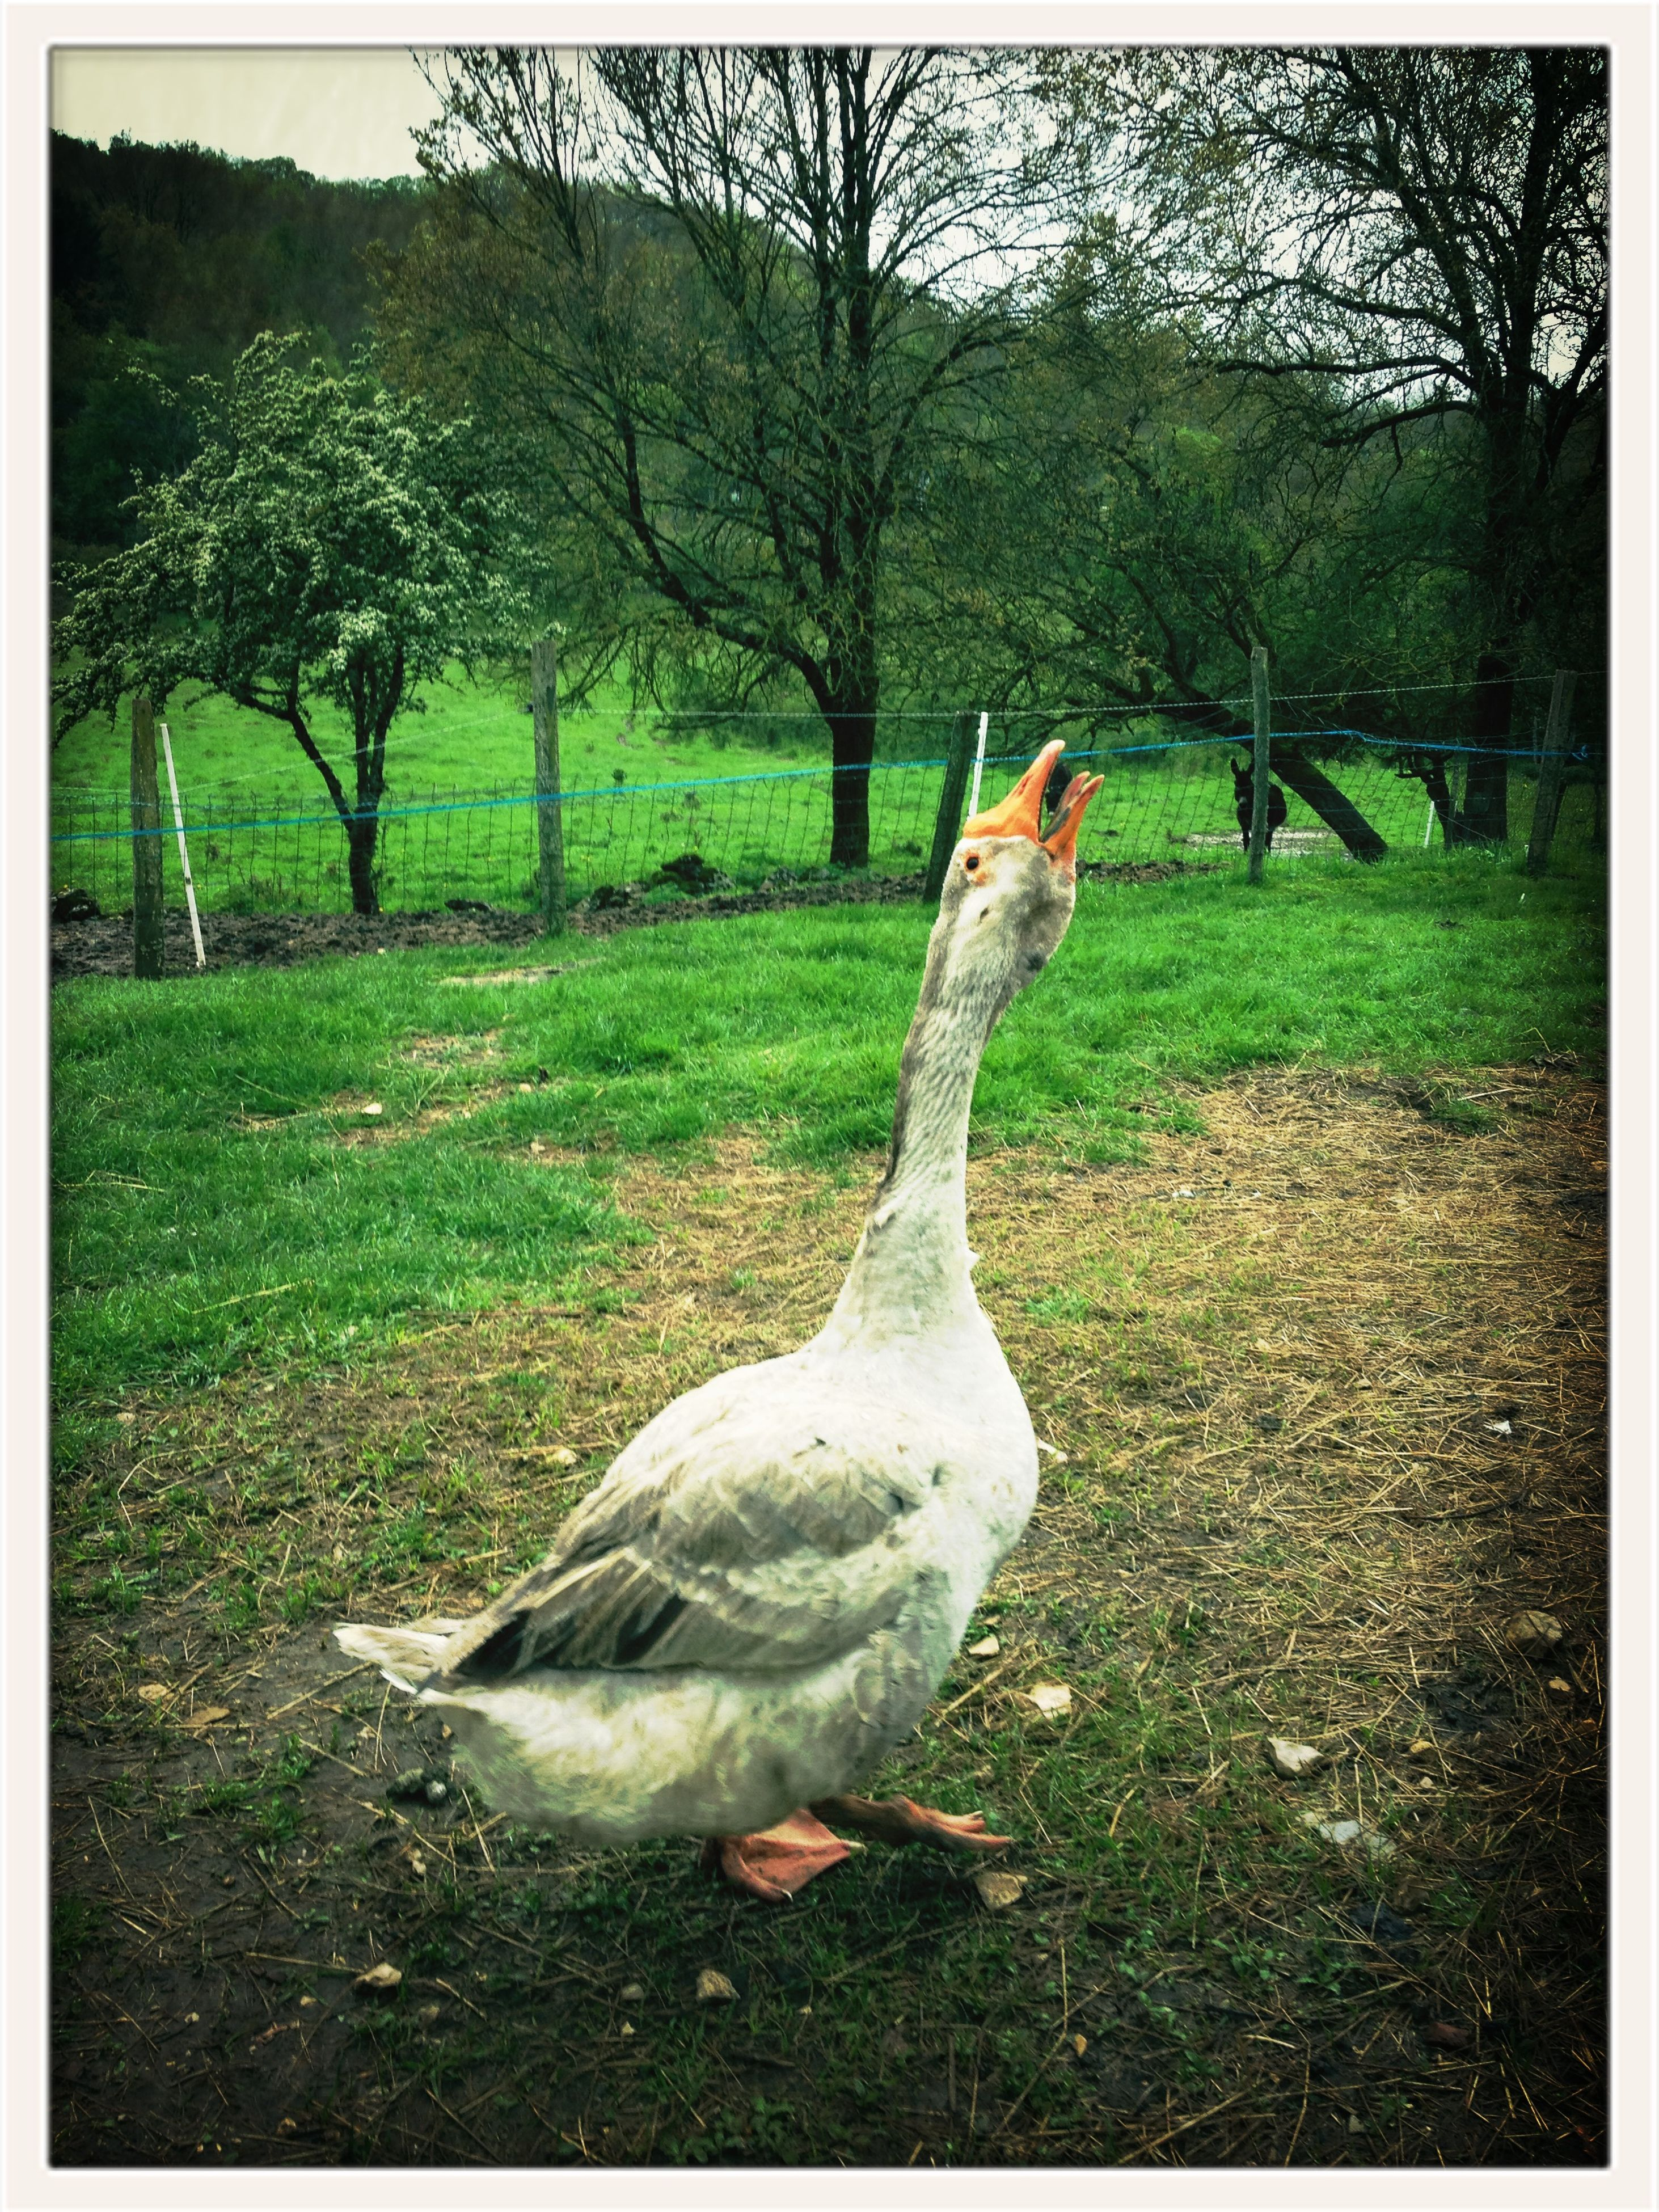 bird, animal themes, transfer print, animals in the wild, wildlife, grass, auto post production filter, field, tree, duck, nature, green color, grassy, side view, full length, beak, outdoors, two animals, day, no people